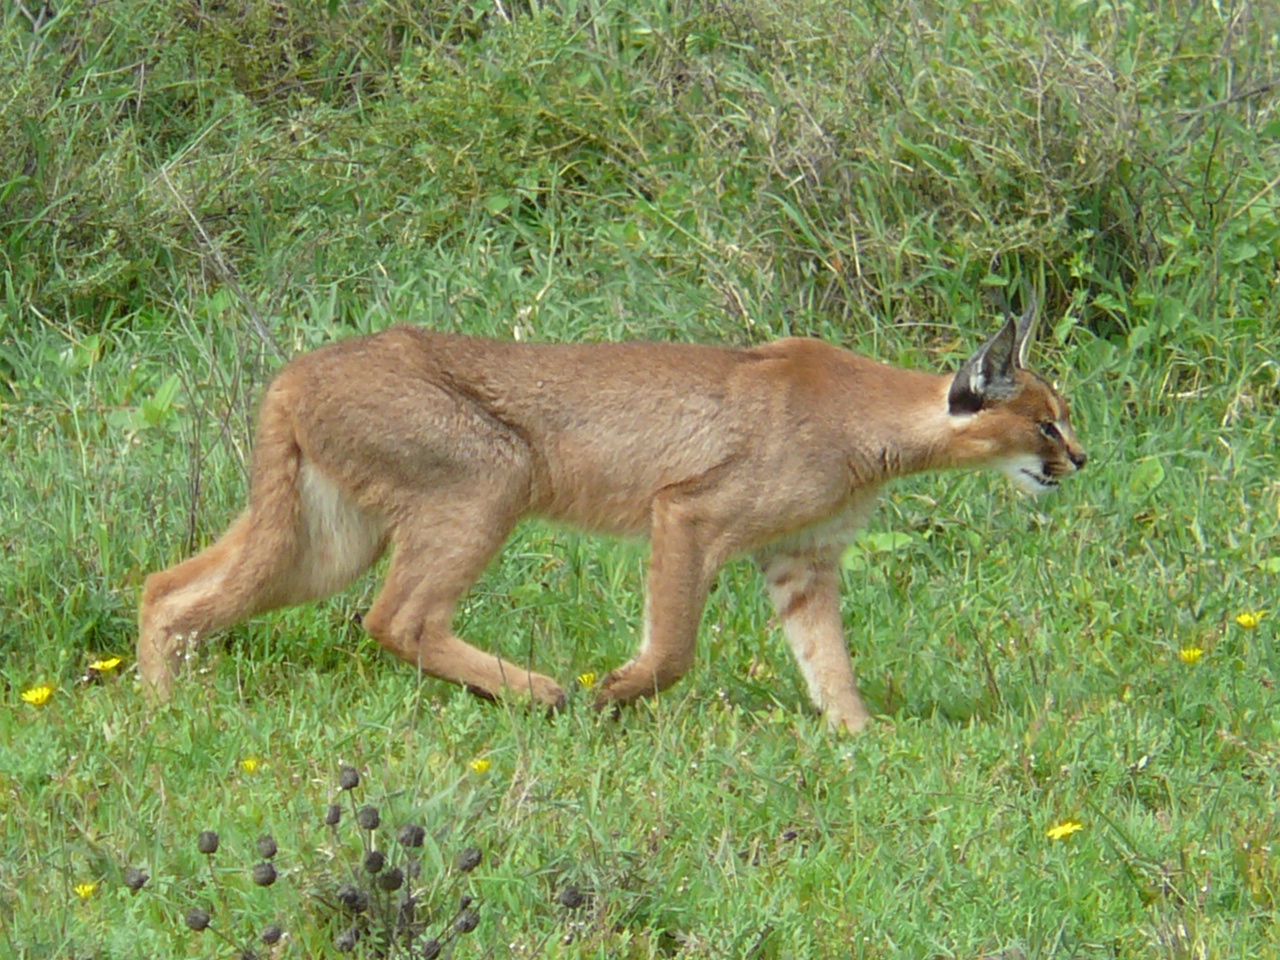 pictures of animal wild cat caracal in forest